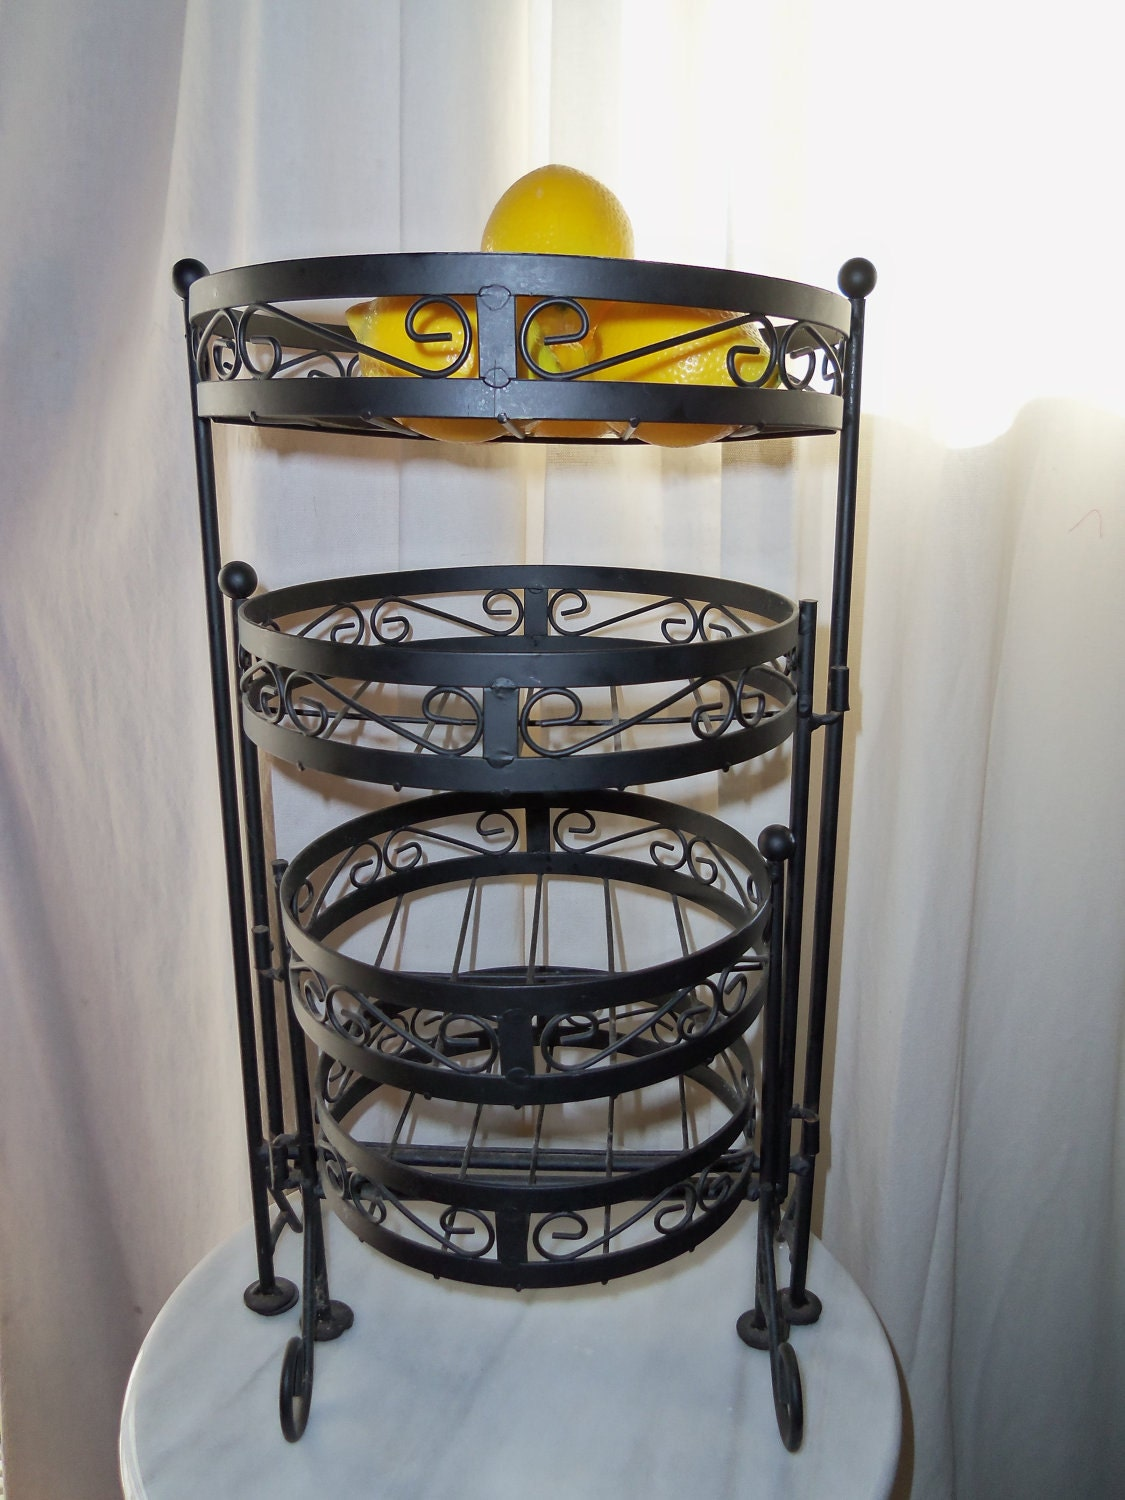 wrought iron fruit stand 3 tier baskets or garden decor on. Black Bedroom Furniture Sets. Home Design Ideas